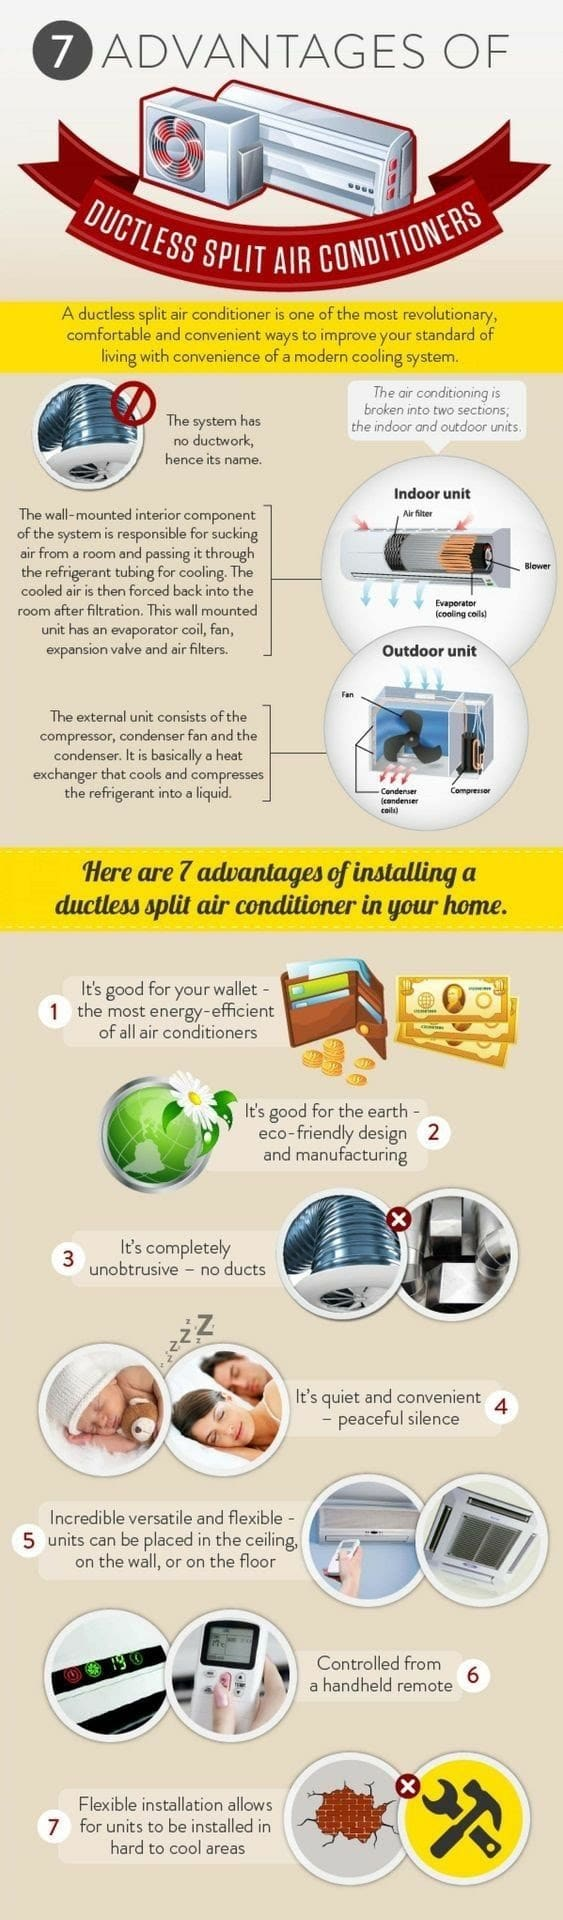 7 reasons ductless split air conditioners are better